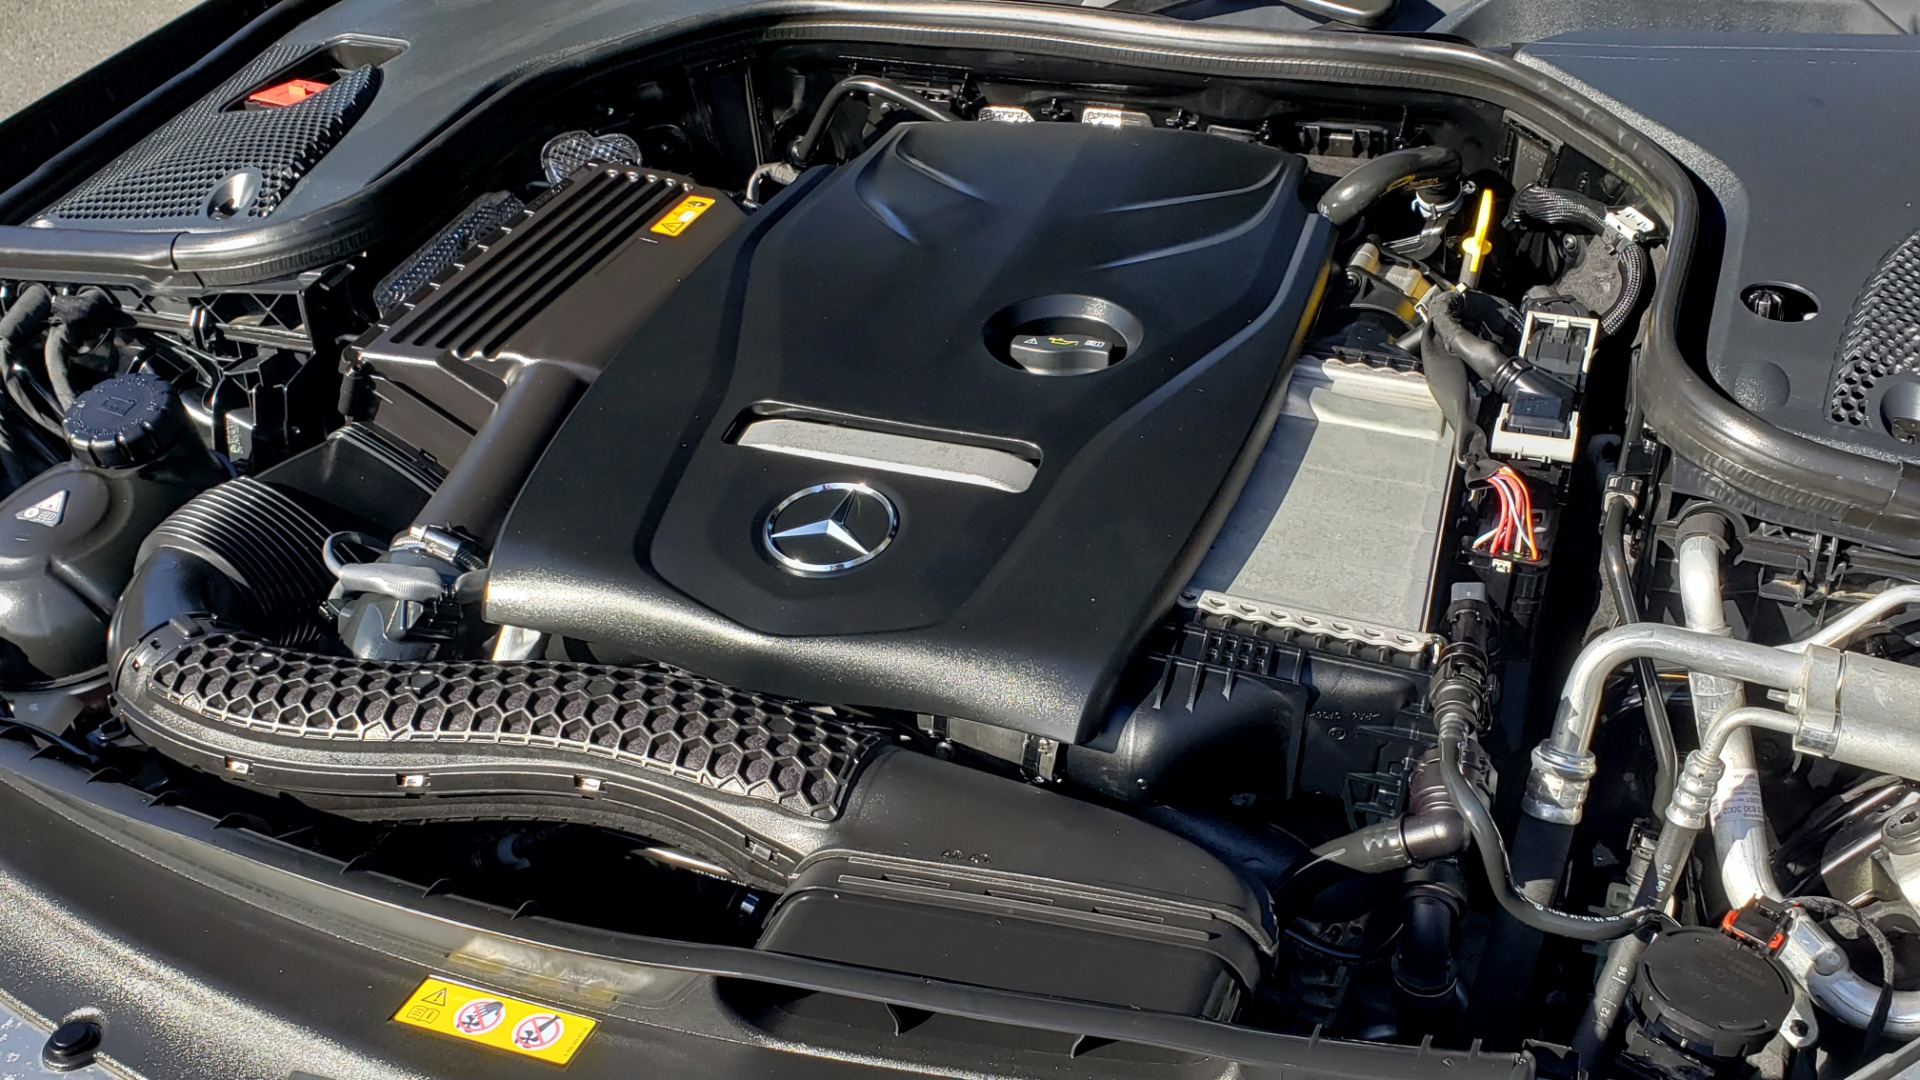 Used 2017 Mercedes-Benz E-CLASS E 300 PREMIUM / NAV / SUNROOF / BURMESTER / HTD STS / REARVIEW for sale $29,995 at Formula Imports in Charlotte NC 28227 11